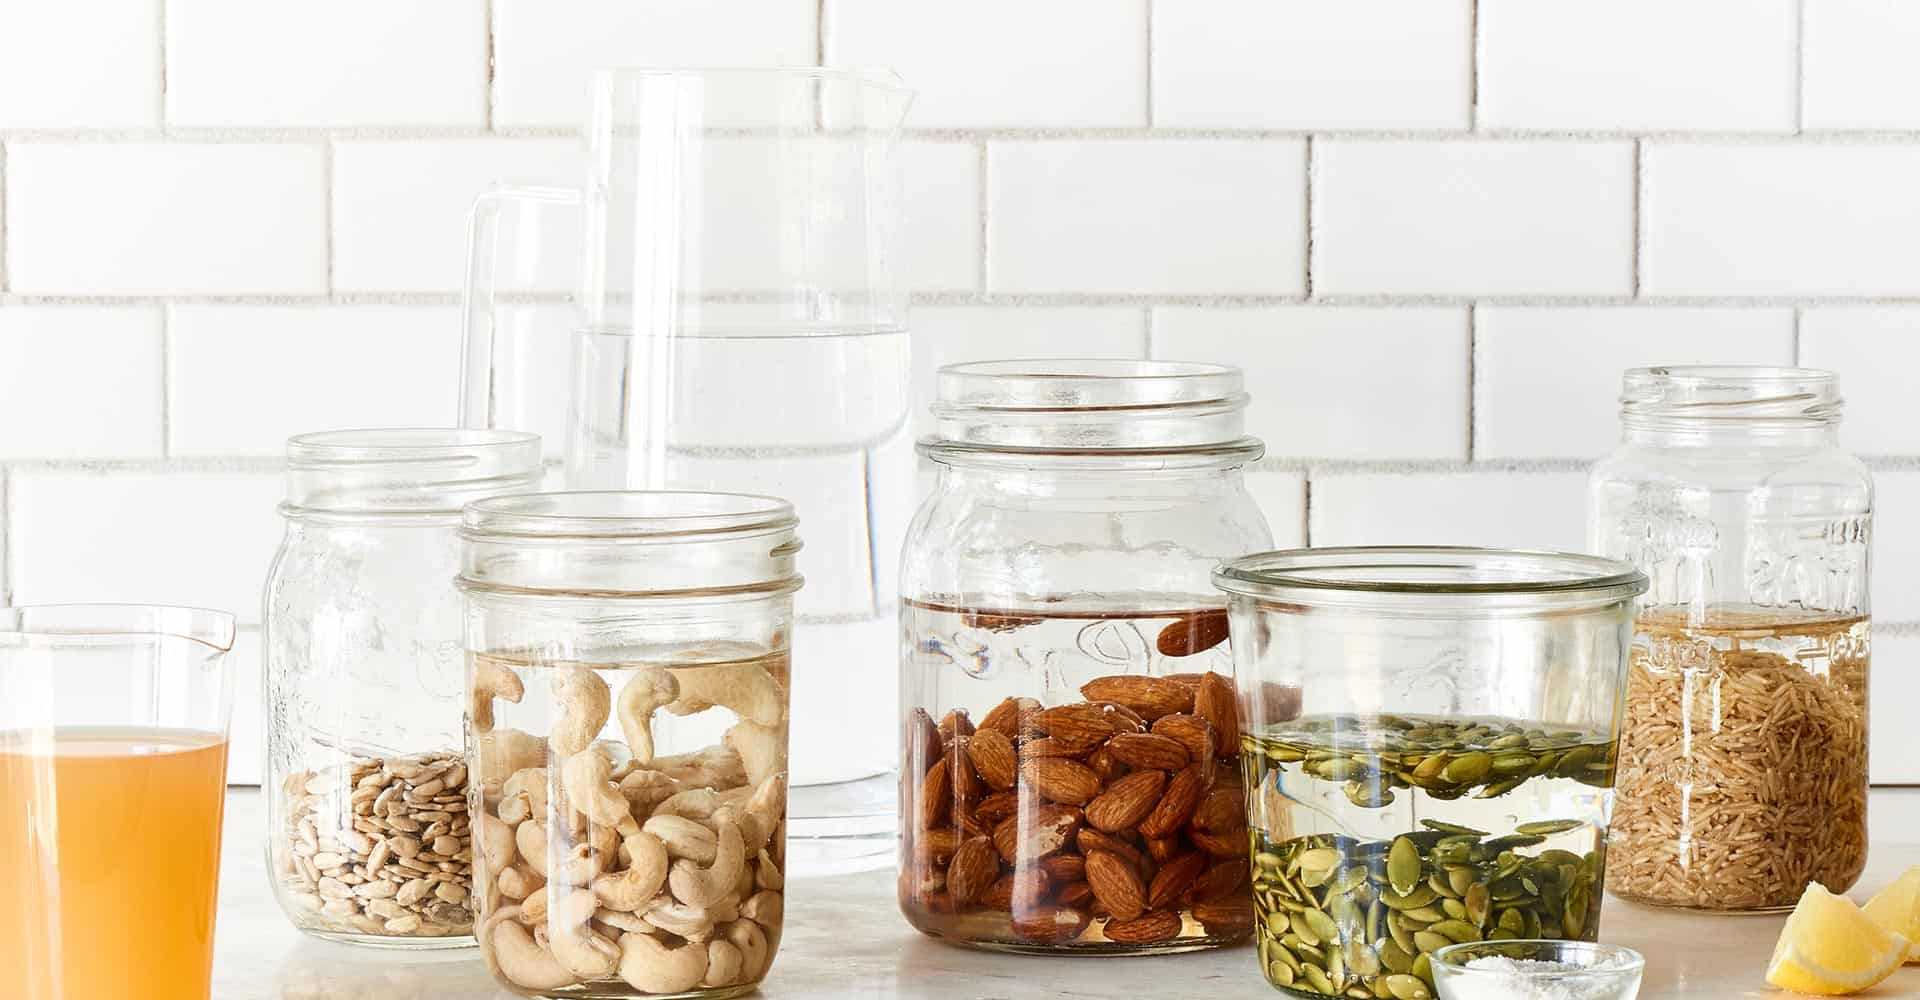 Soaking Nuts, Seeds, and Grains For Better Health - The